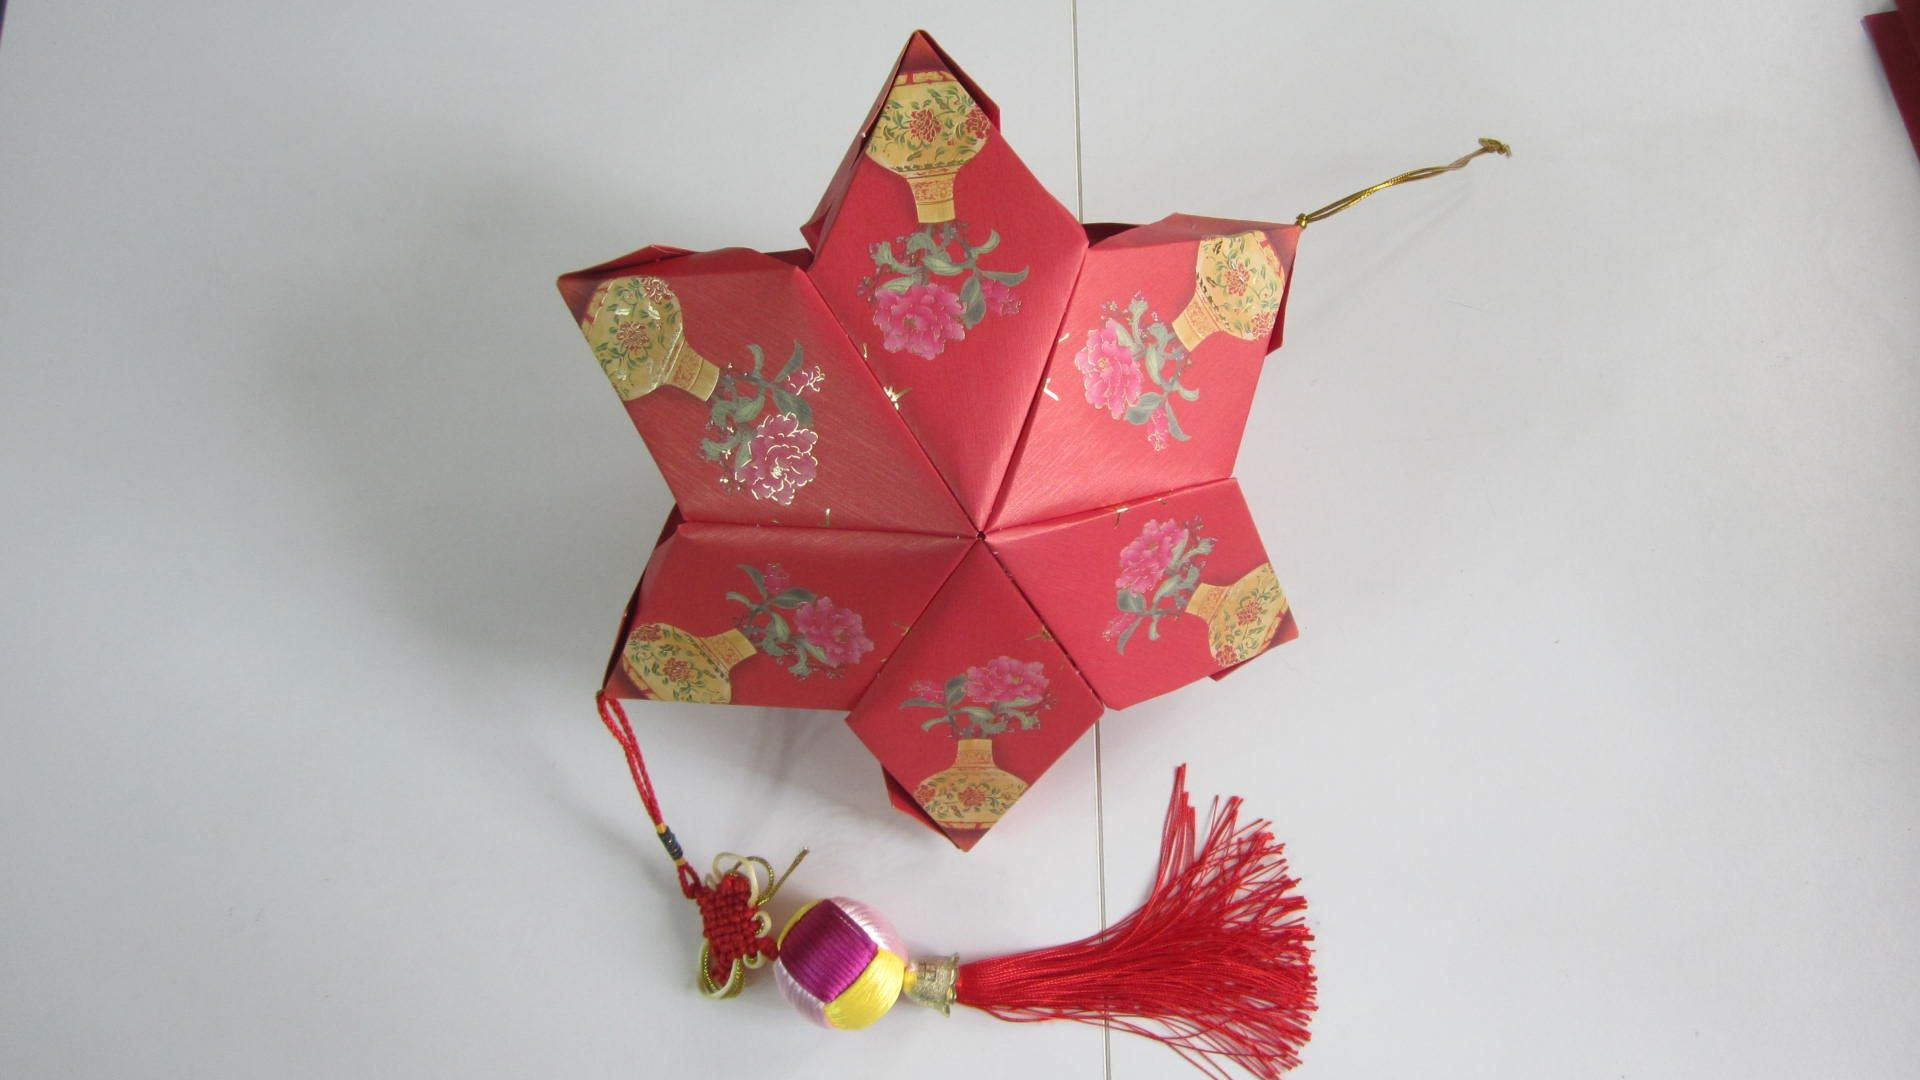 Cny Tutorial No 21 12 Unit Red Packet Hongbao Star Lantern Chinese New Year Crafts Chinese Arts And Crafts Red Packet